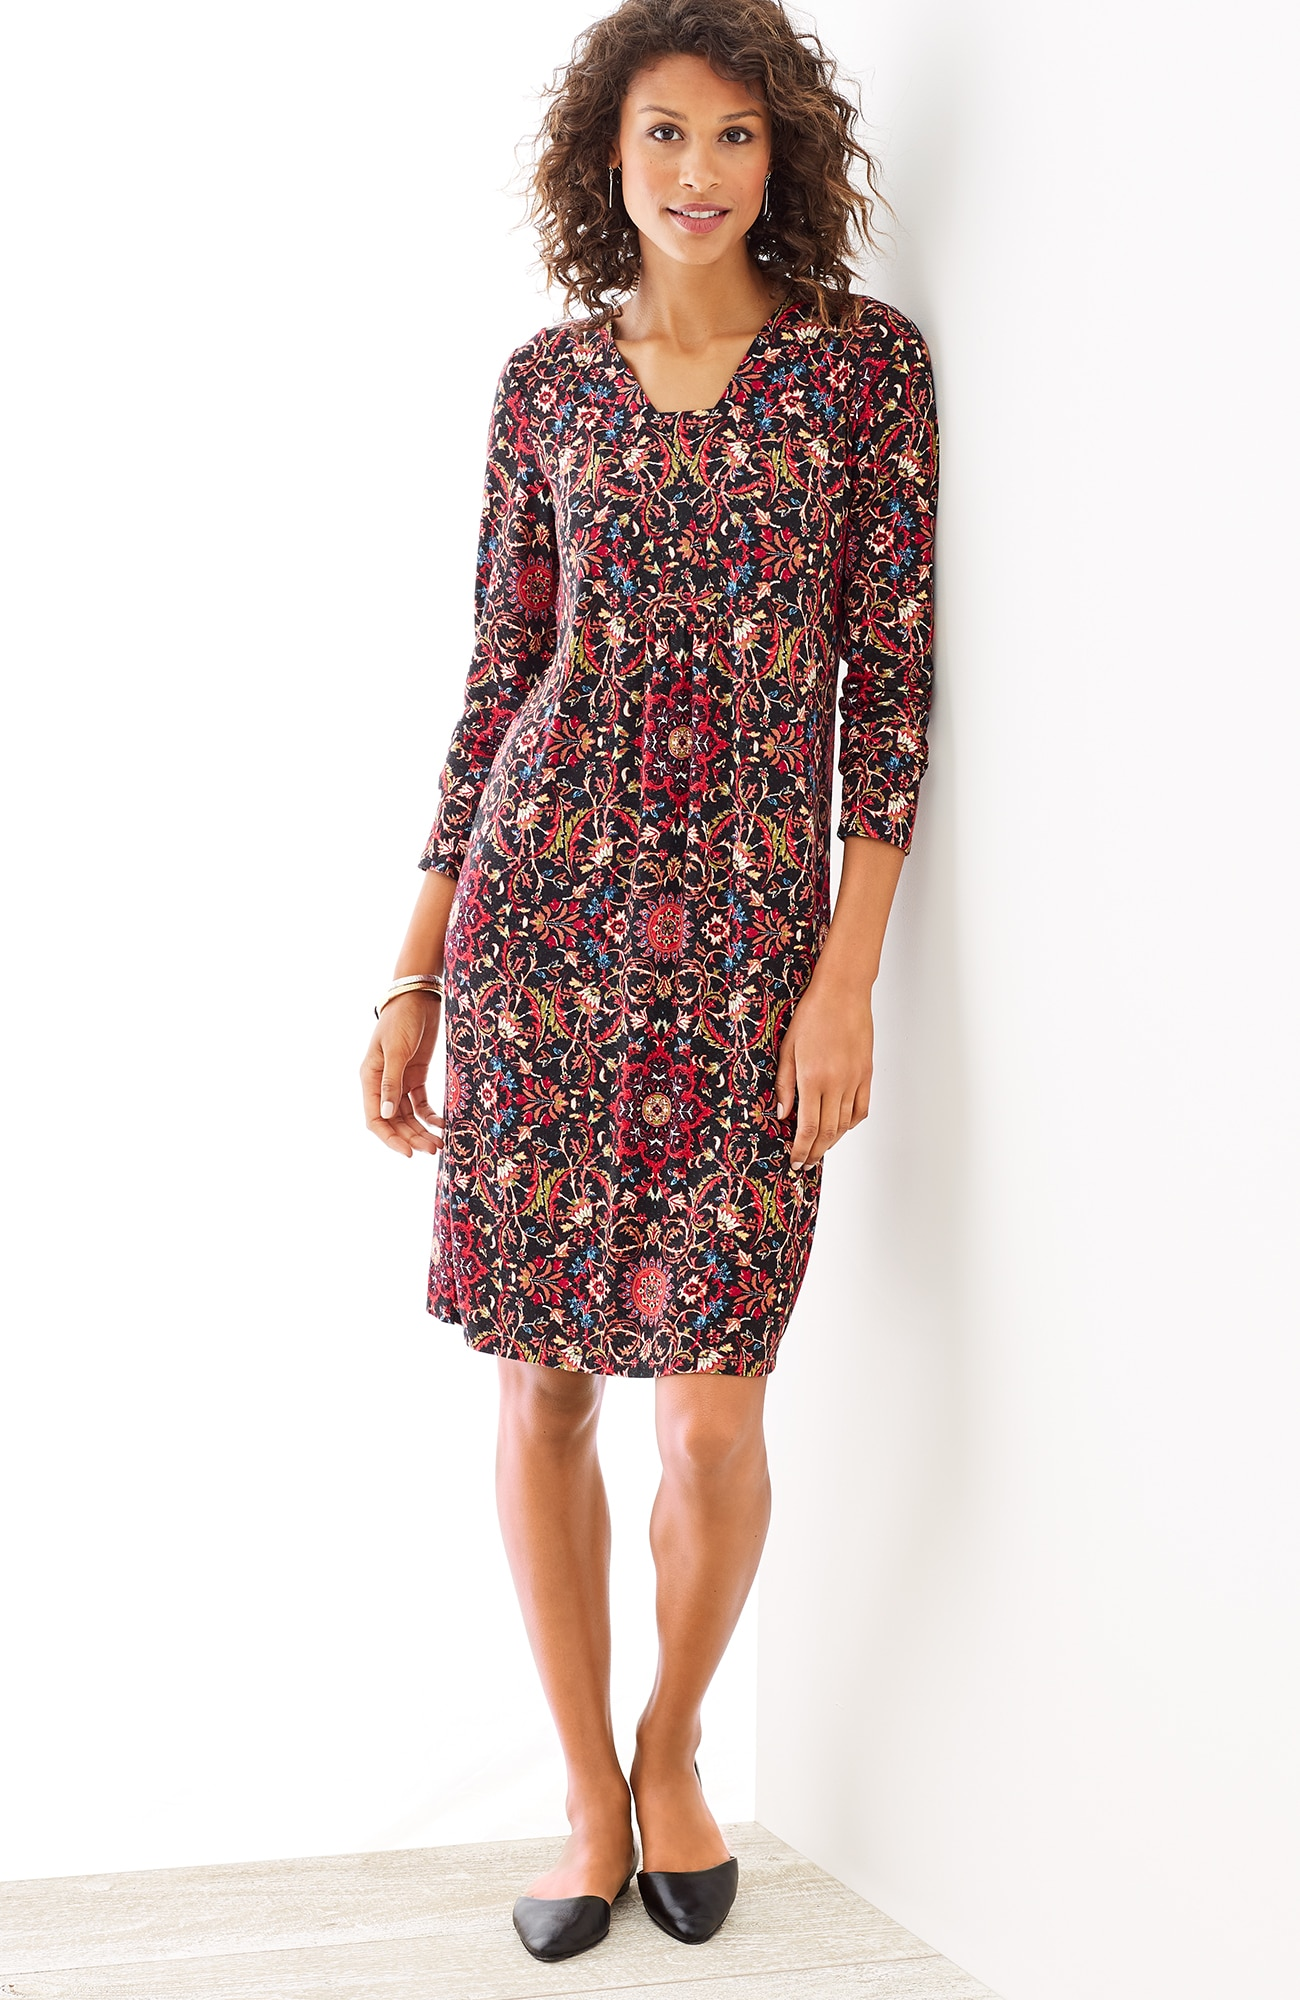 tapestry-print knit dress